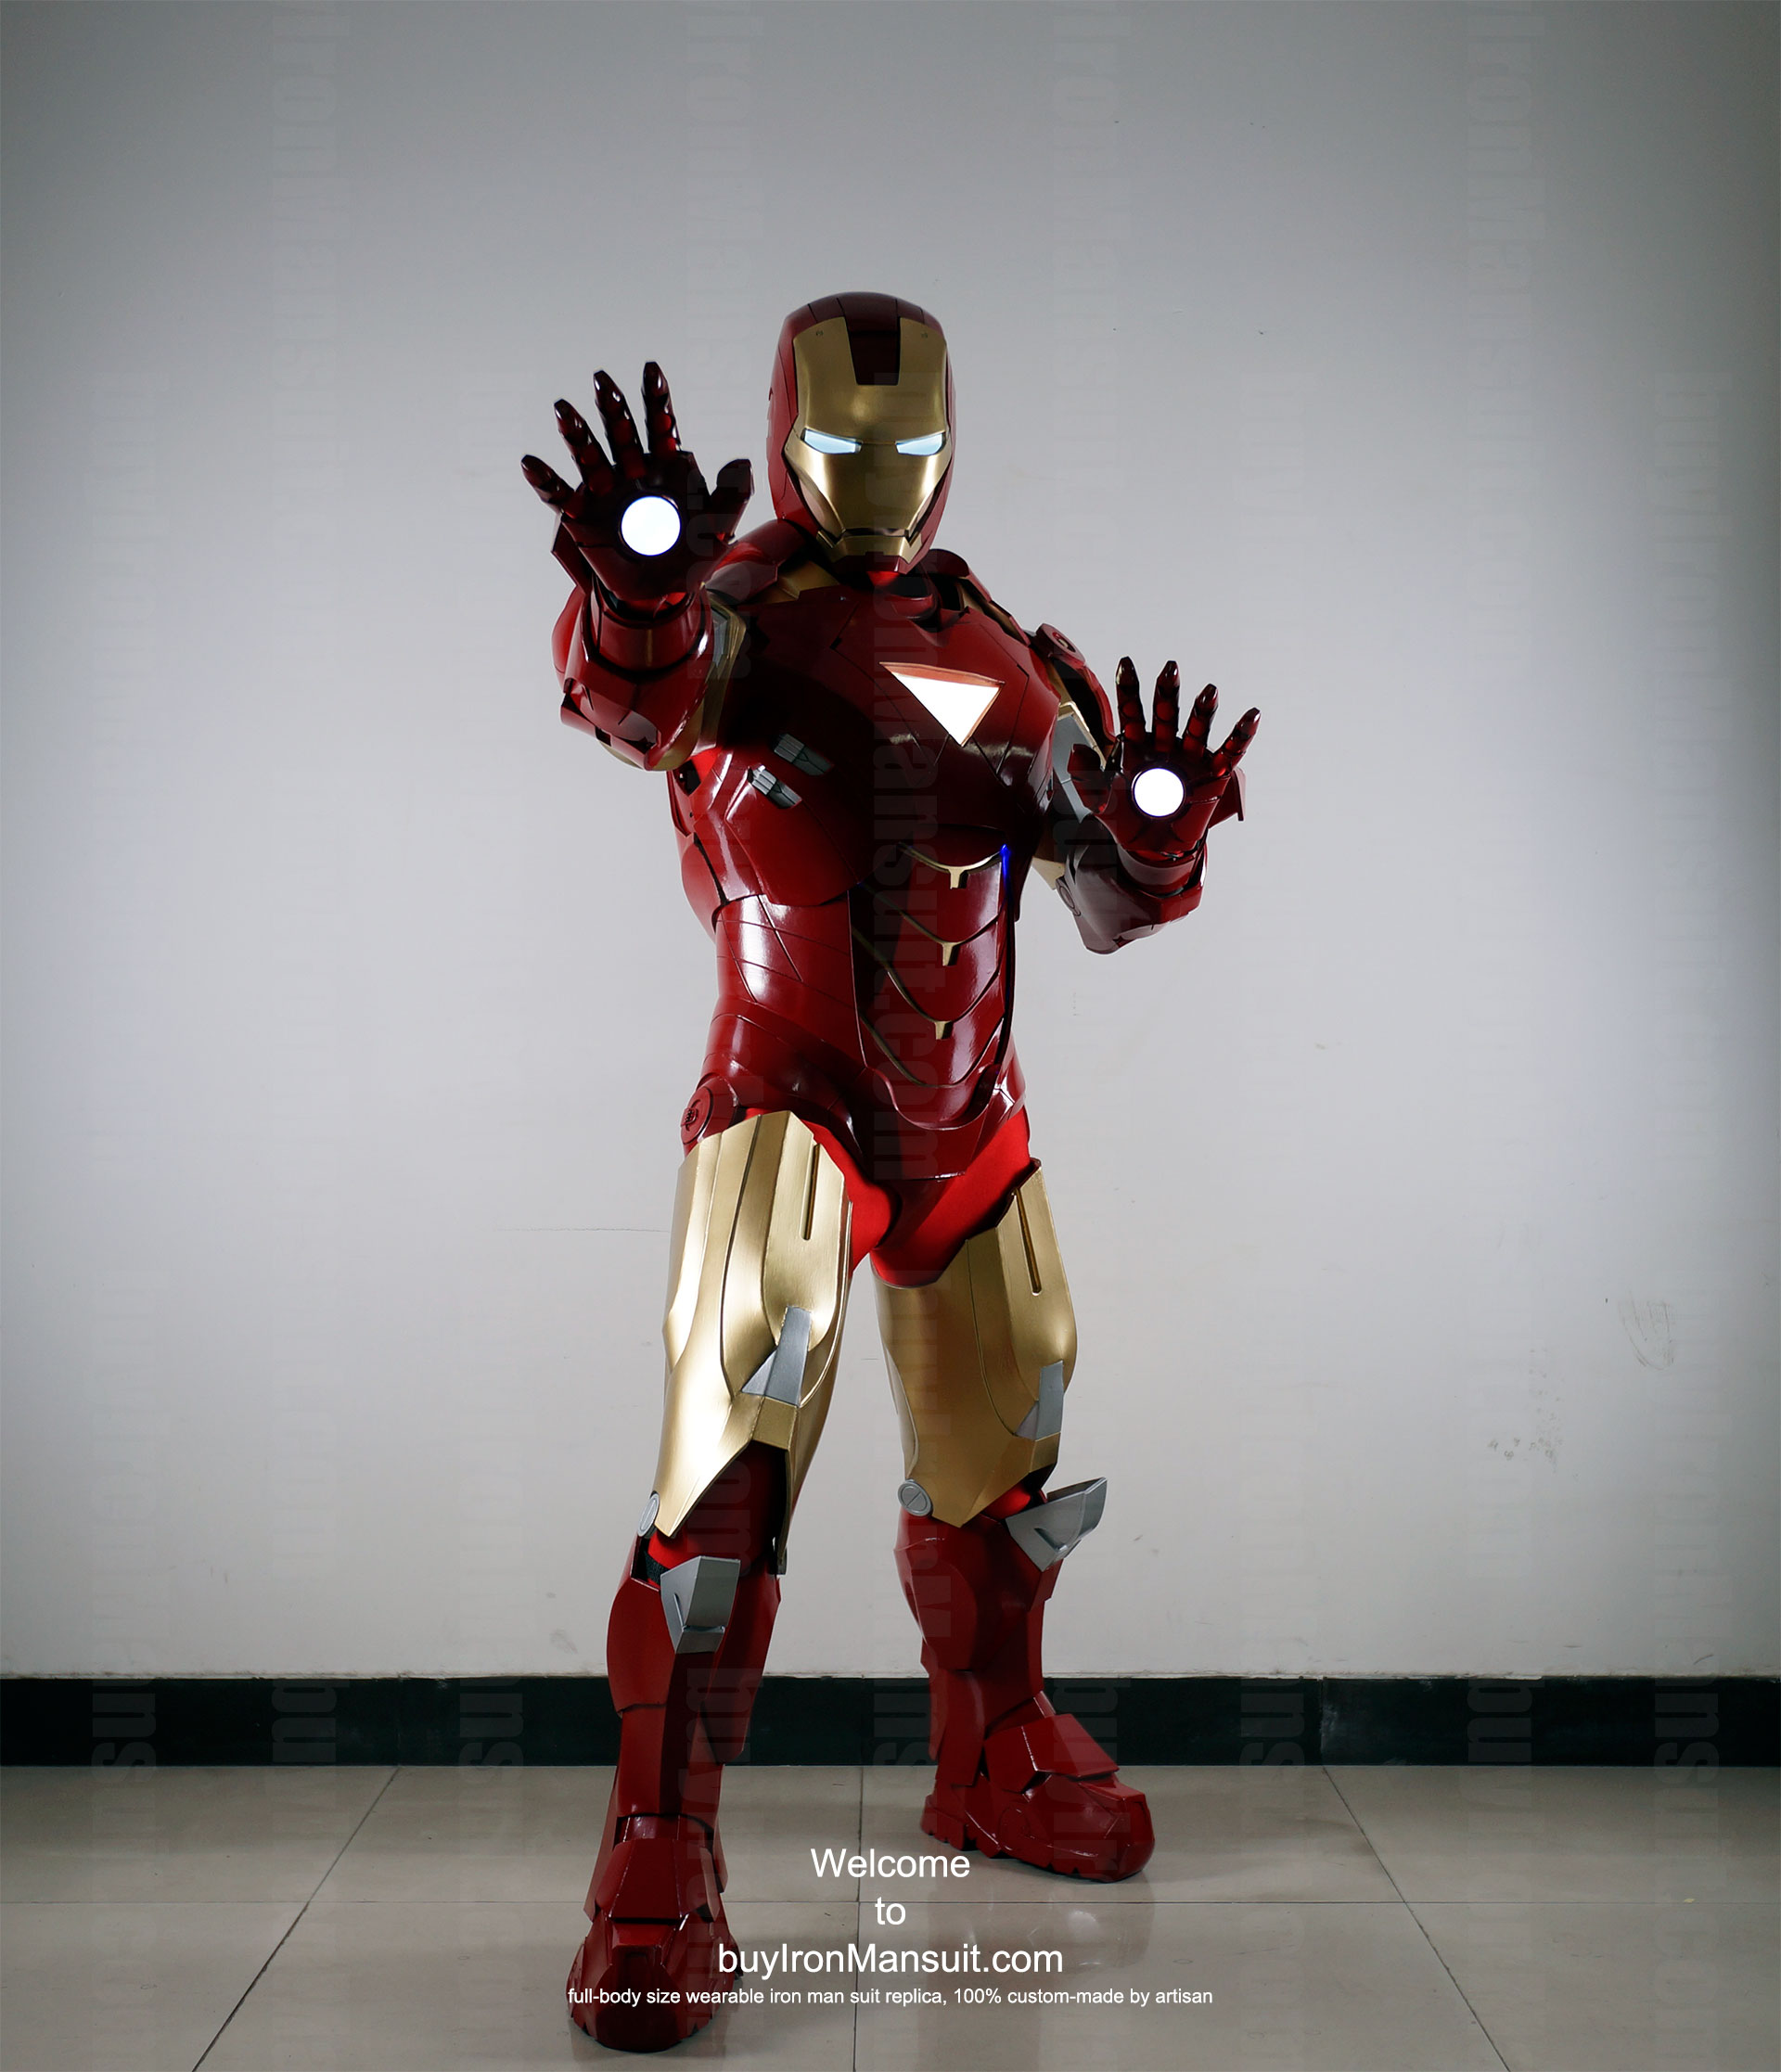 Buy Iron Man Suit Replica Buy Iron Man Suit Mark 6 Front